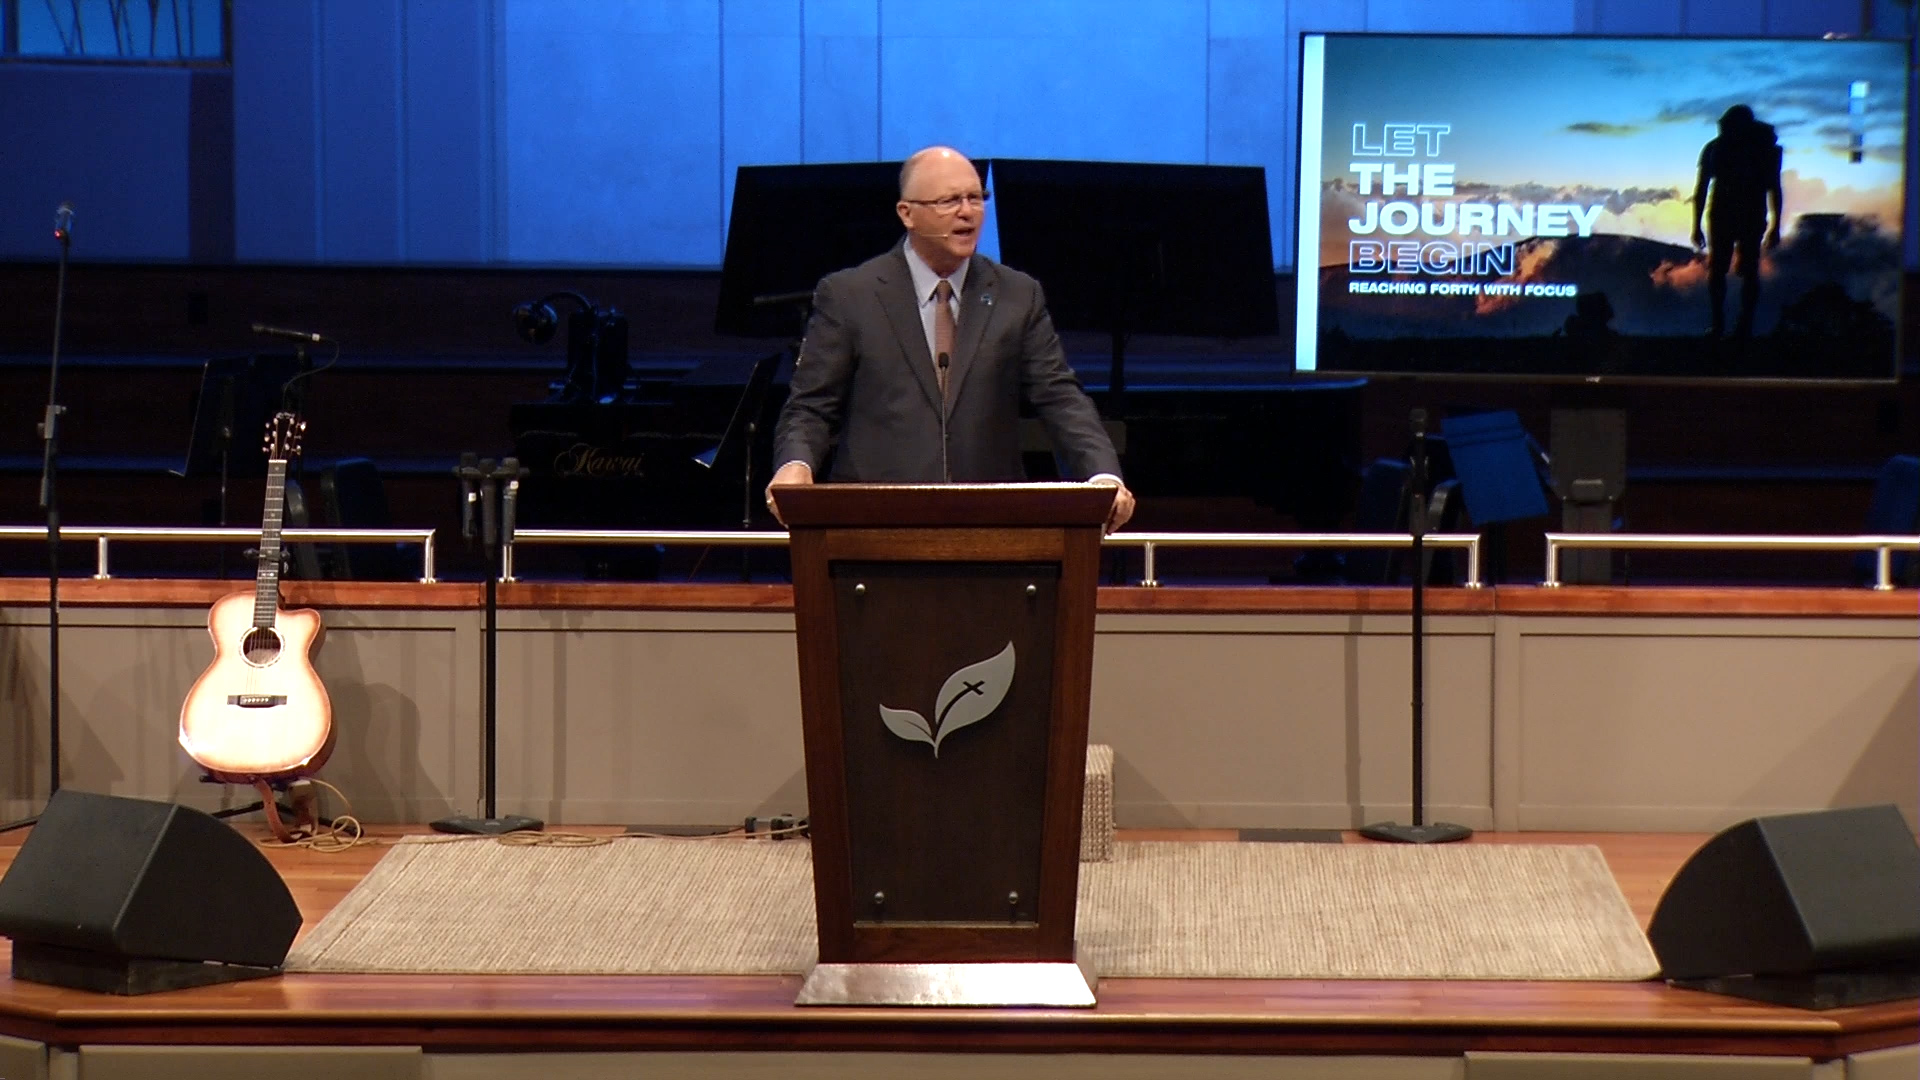 Pastor Paul Chappell: Reaching Forth with Focus